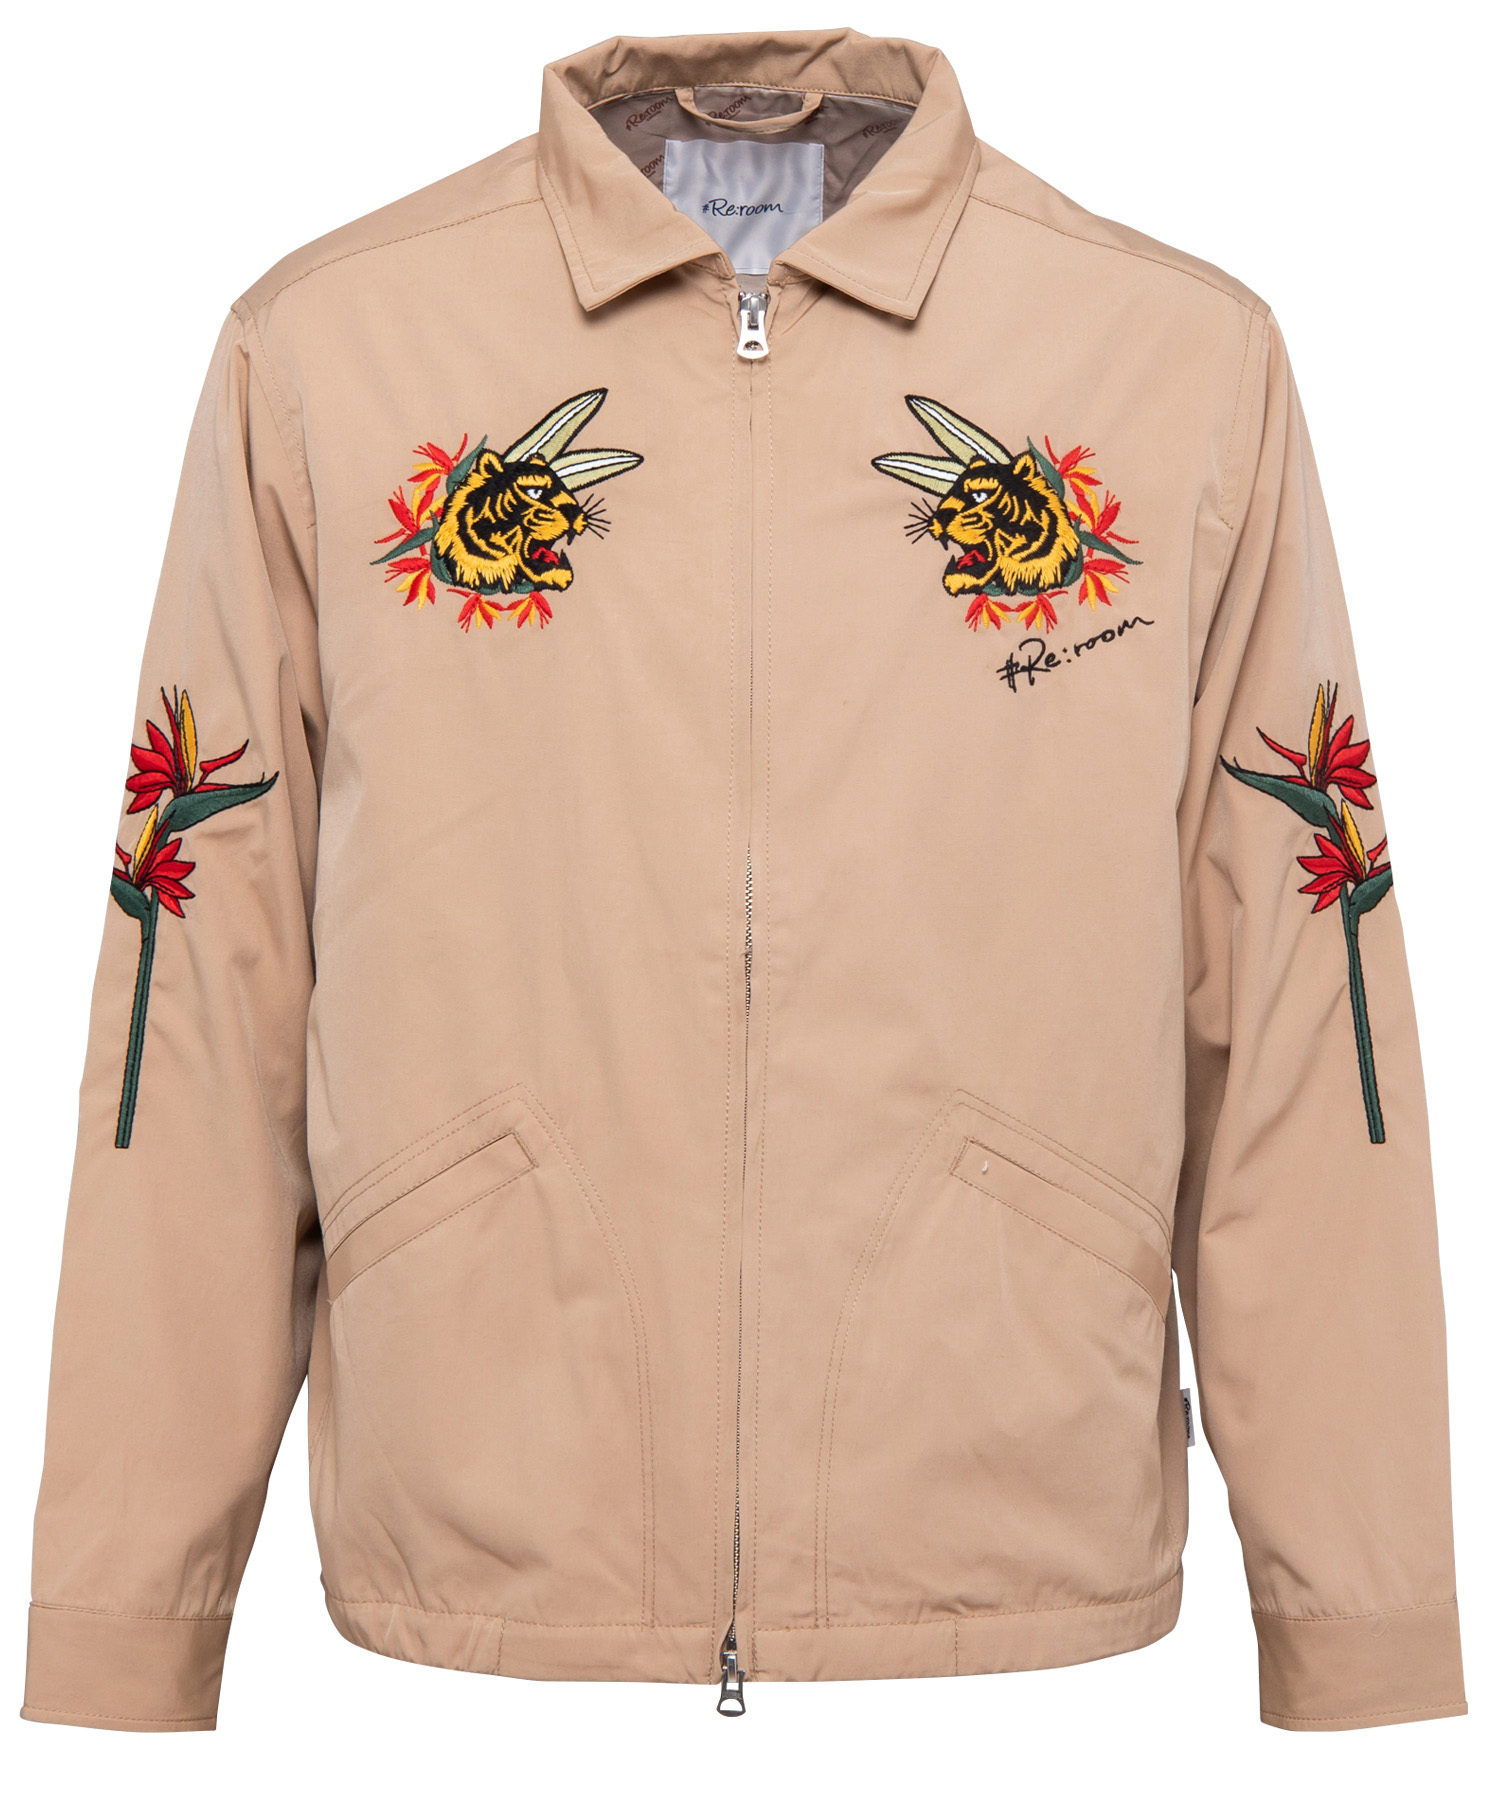 #RE:ROOM TIGER EMBROIDERY JACKET[REJ032]